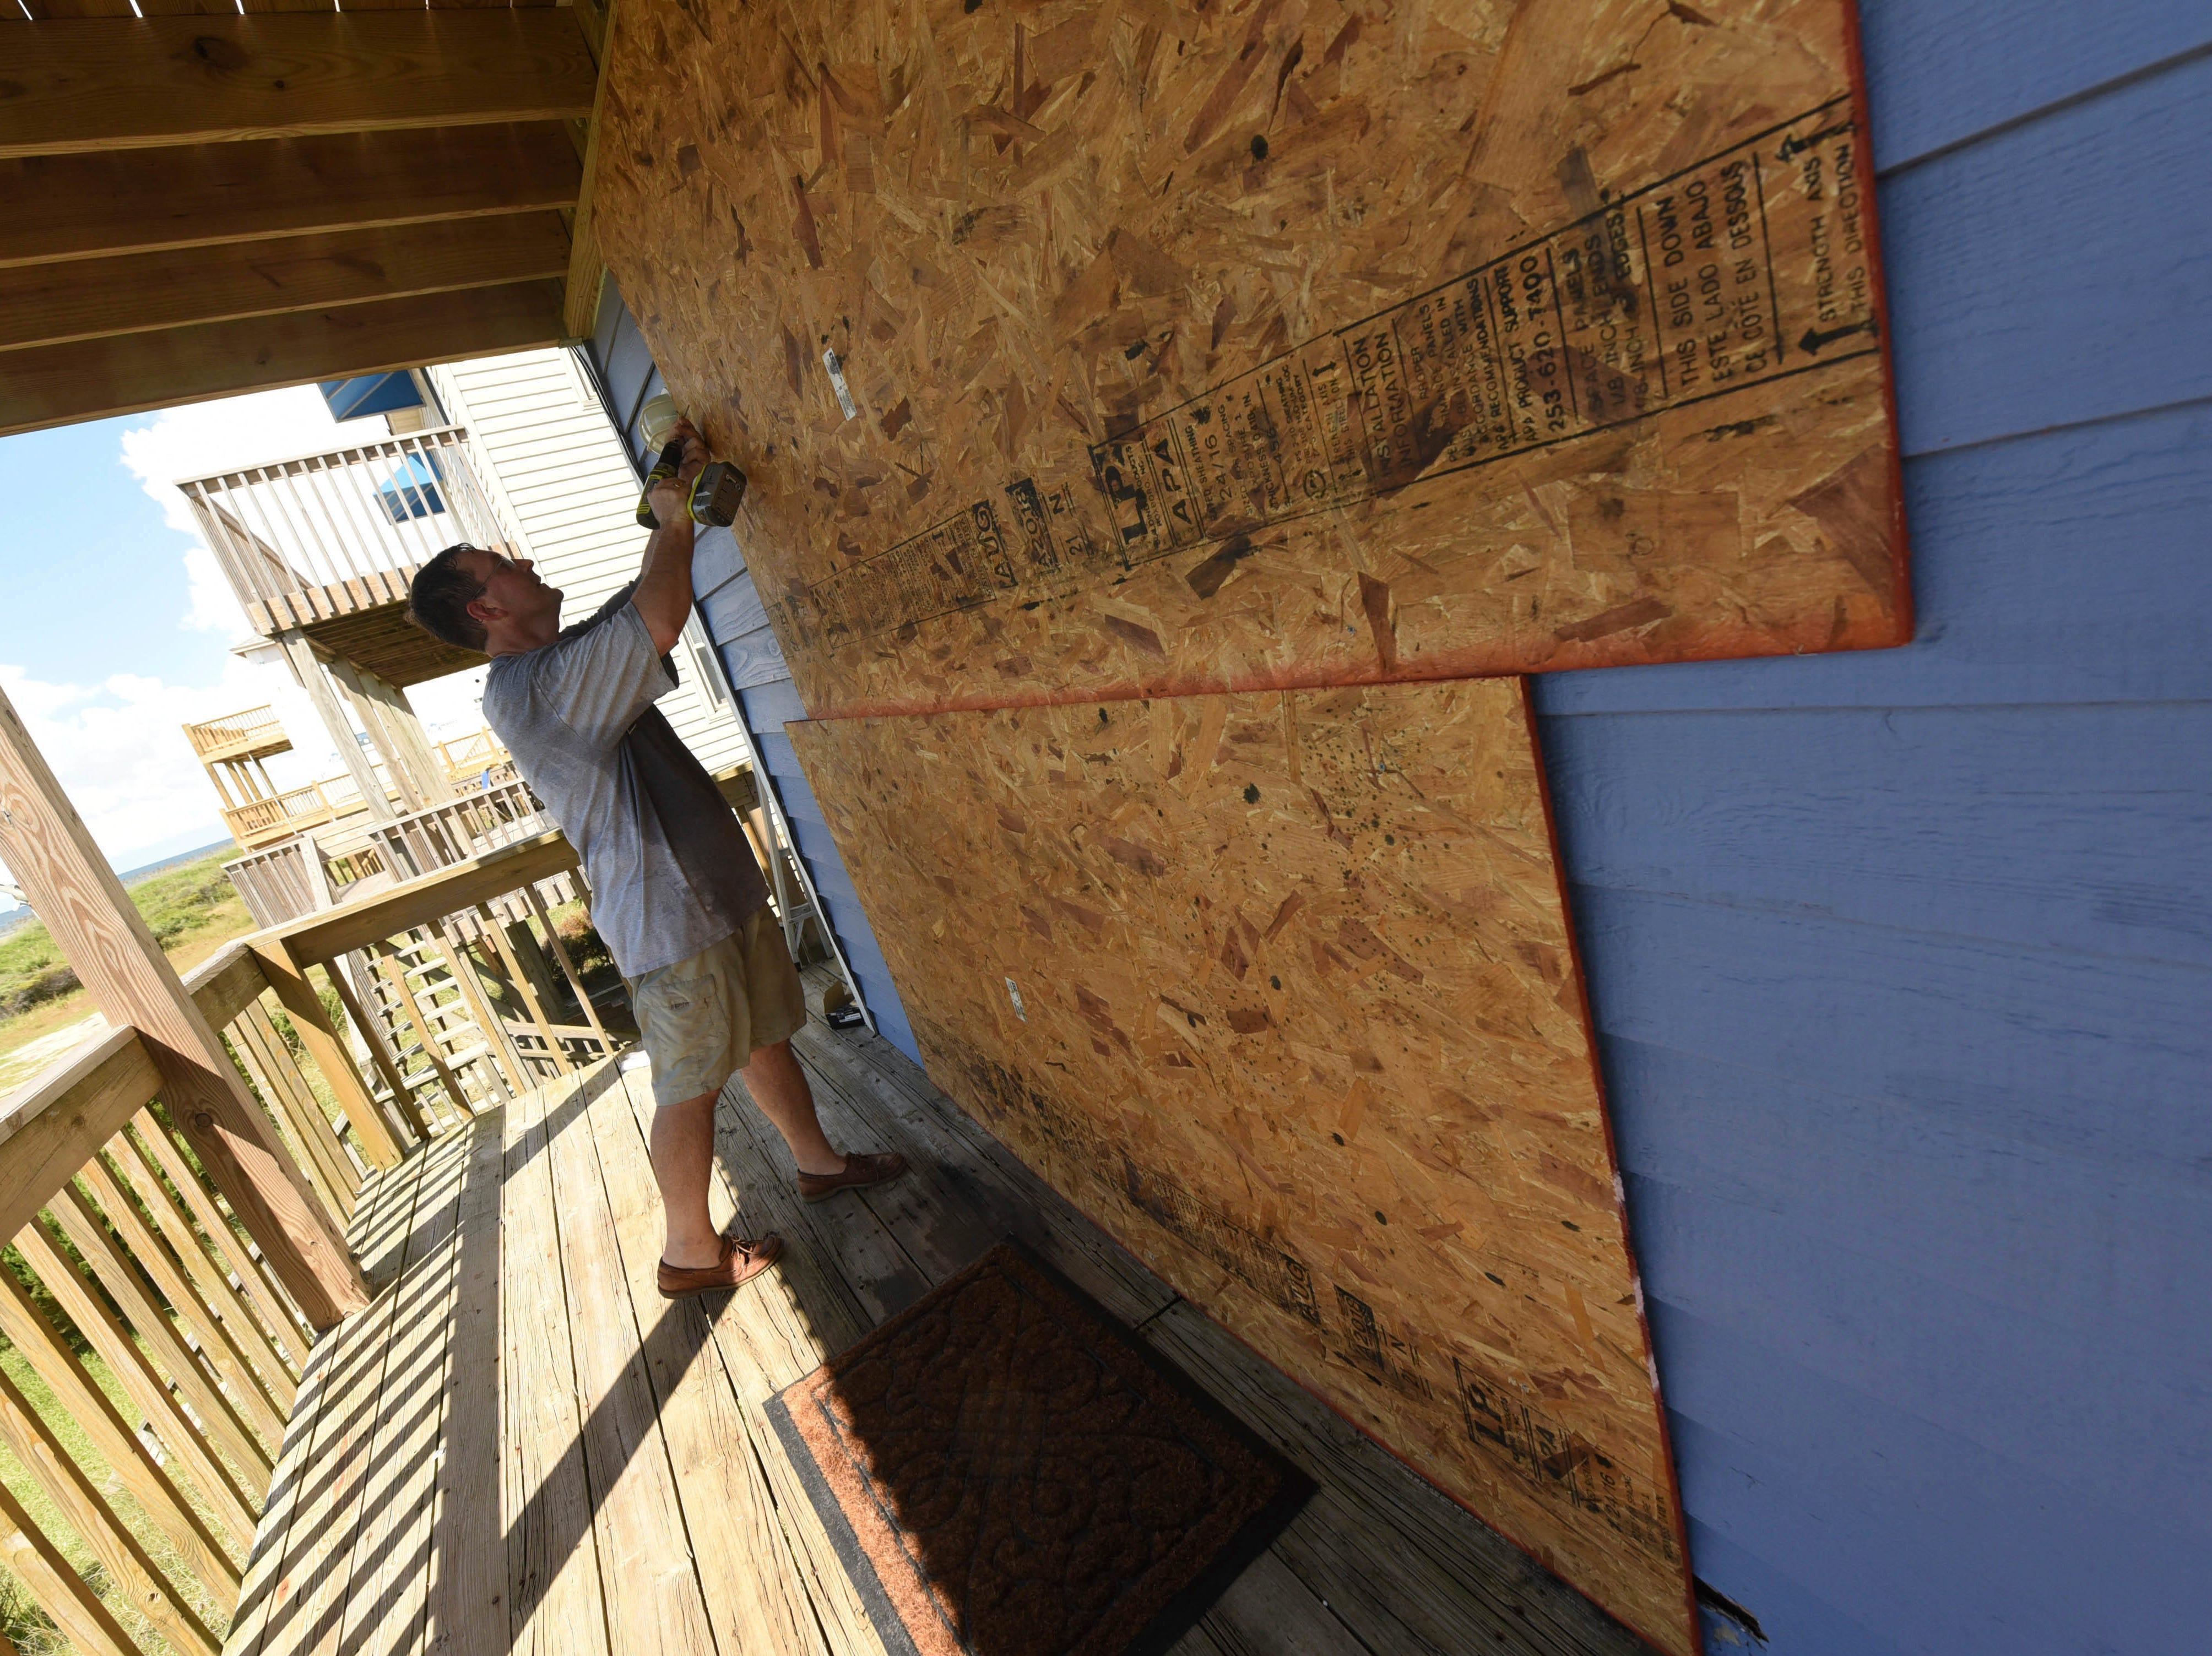 Mark Mead boards up his rental property in Oak Island, N.C., Tuesday Sept. 11, 2018, in preparation for Hurricane Florence.